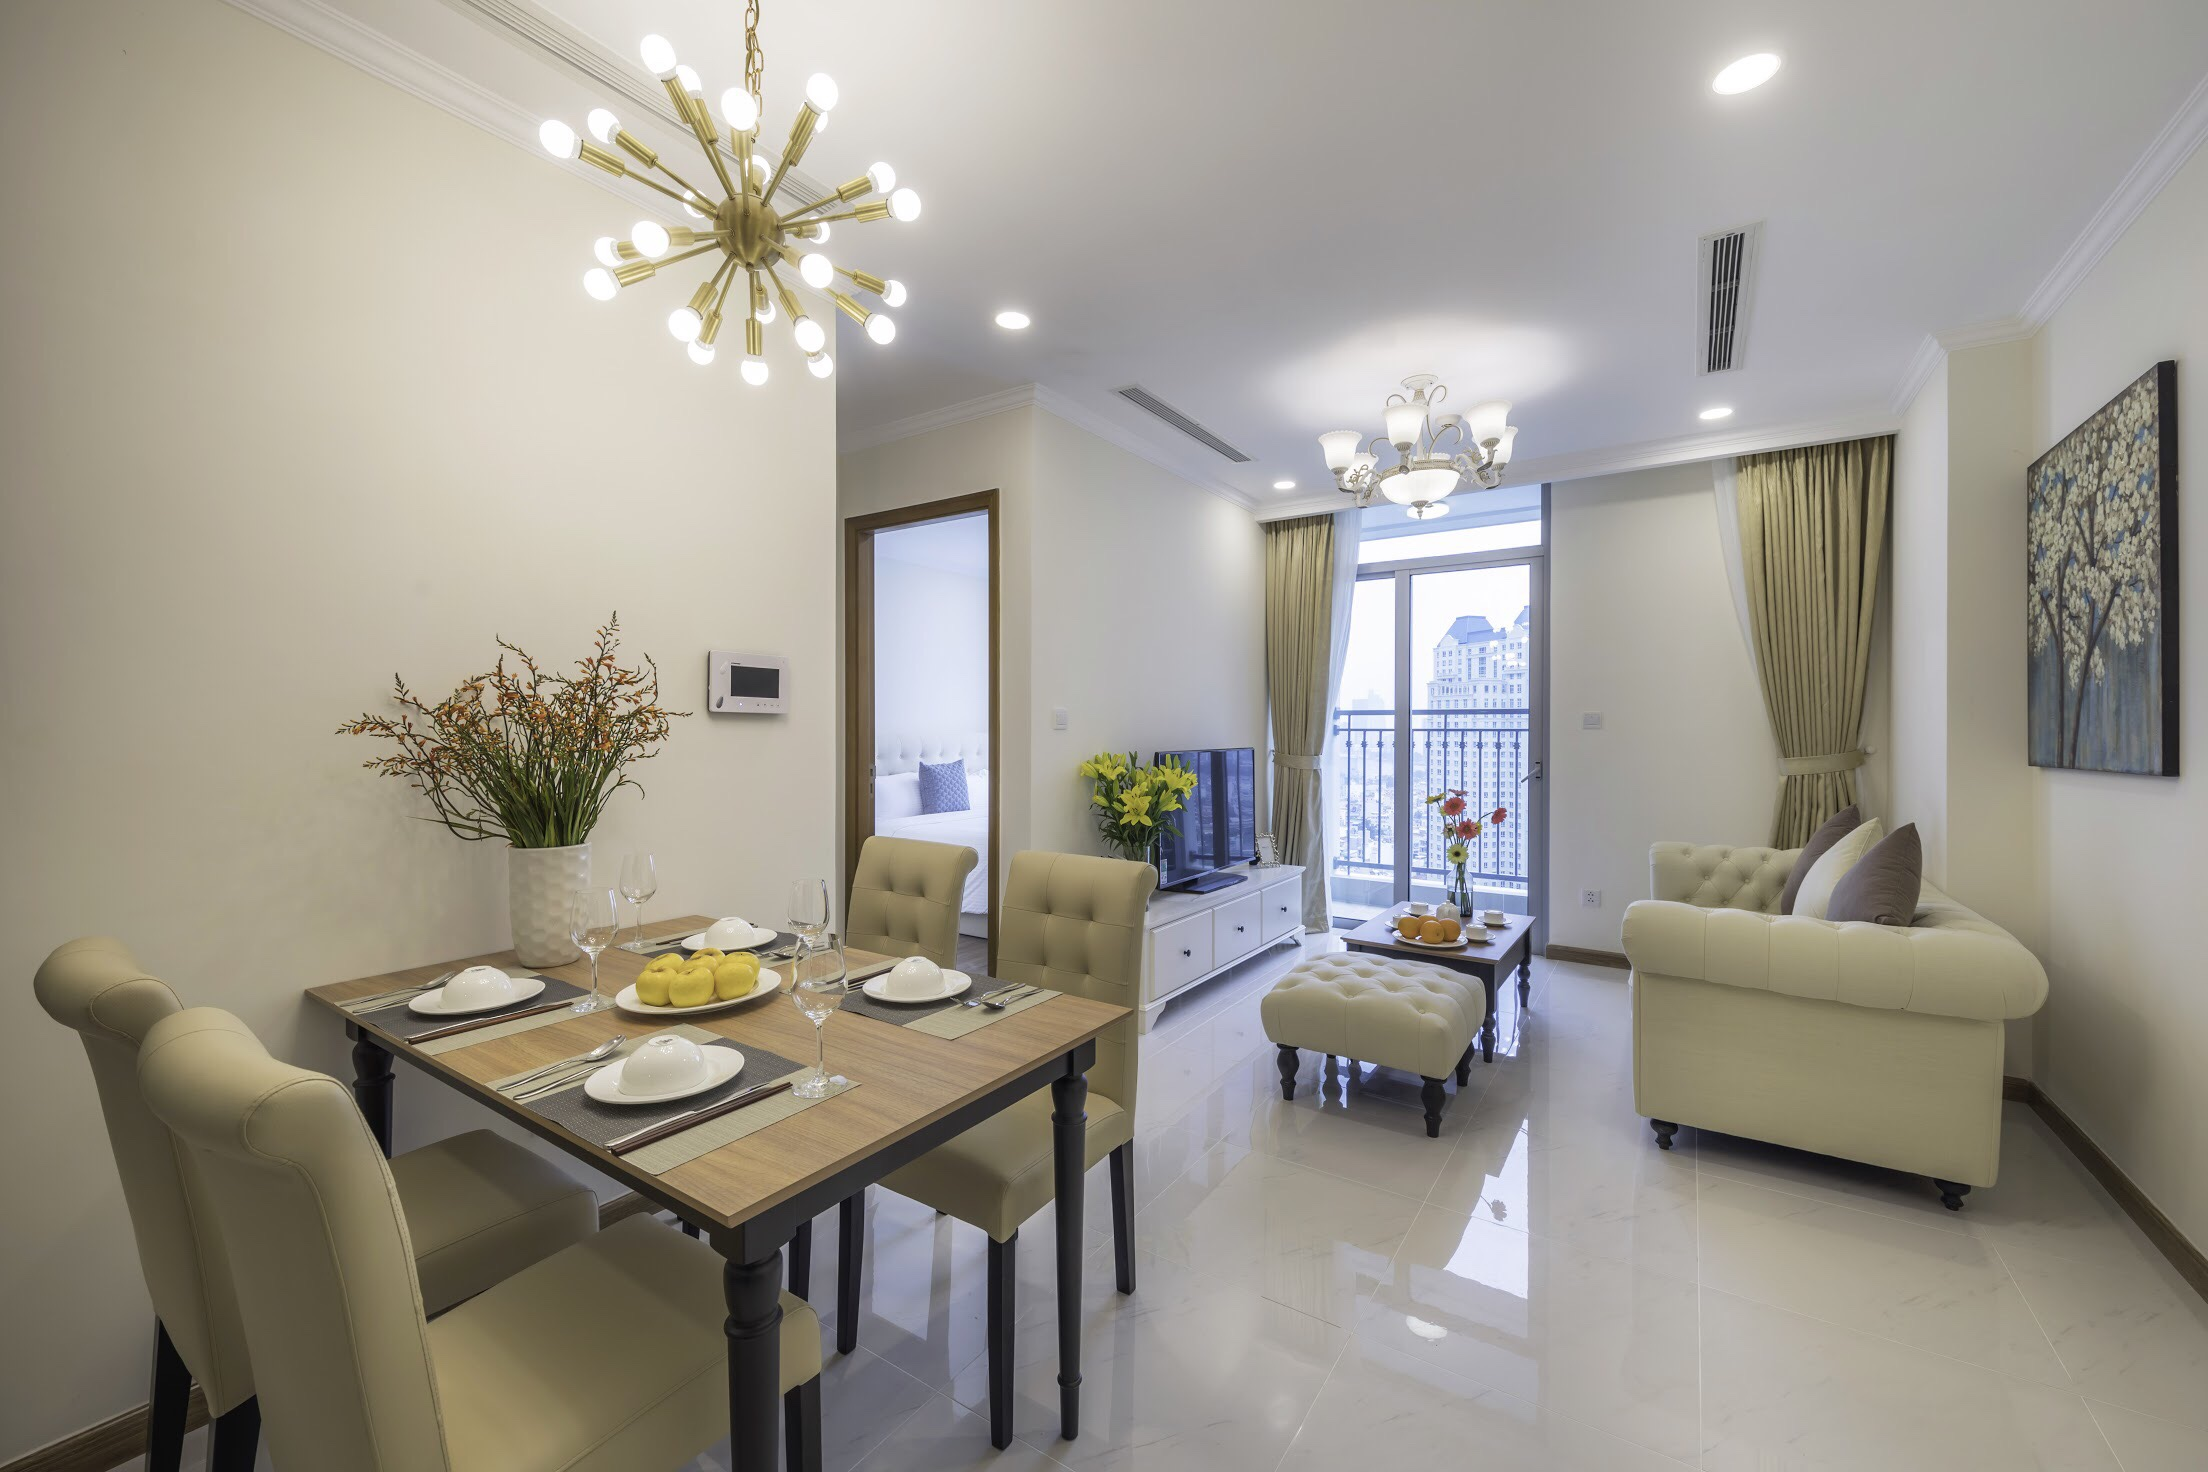 vinhomes central park apartment for rent in binh thanh district hcmc BT105L534 (3)